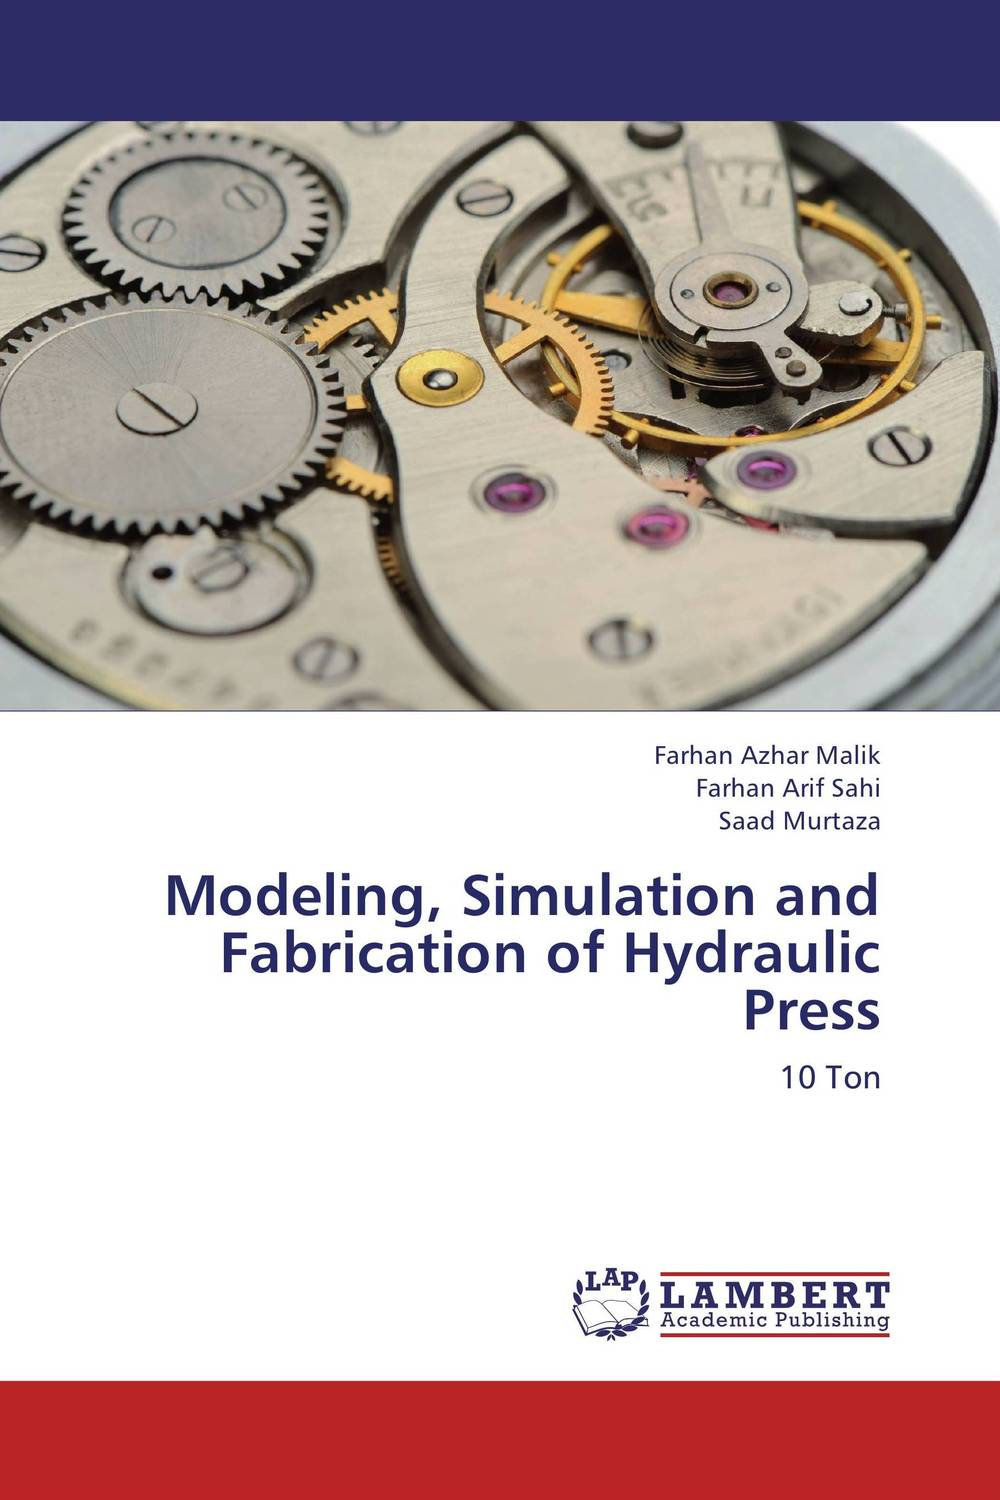 Modeling, Simulation and Fabrication of Hydraulic Press